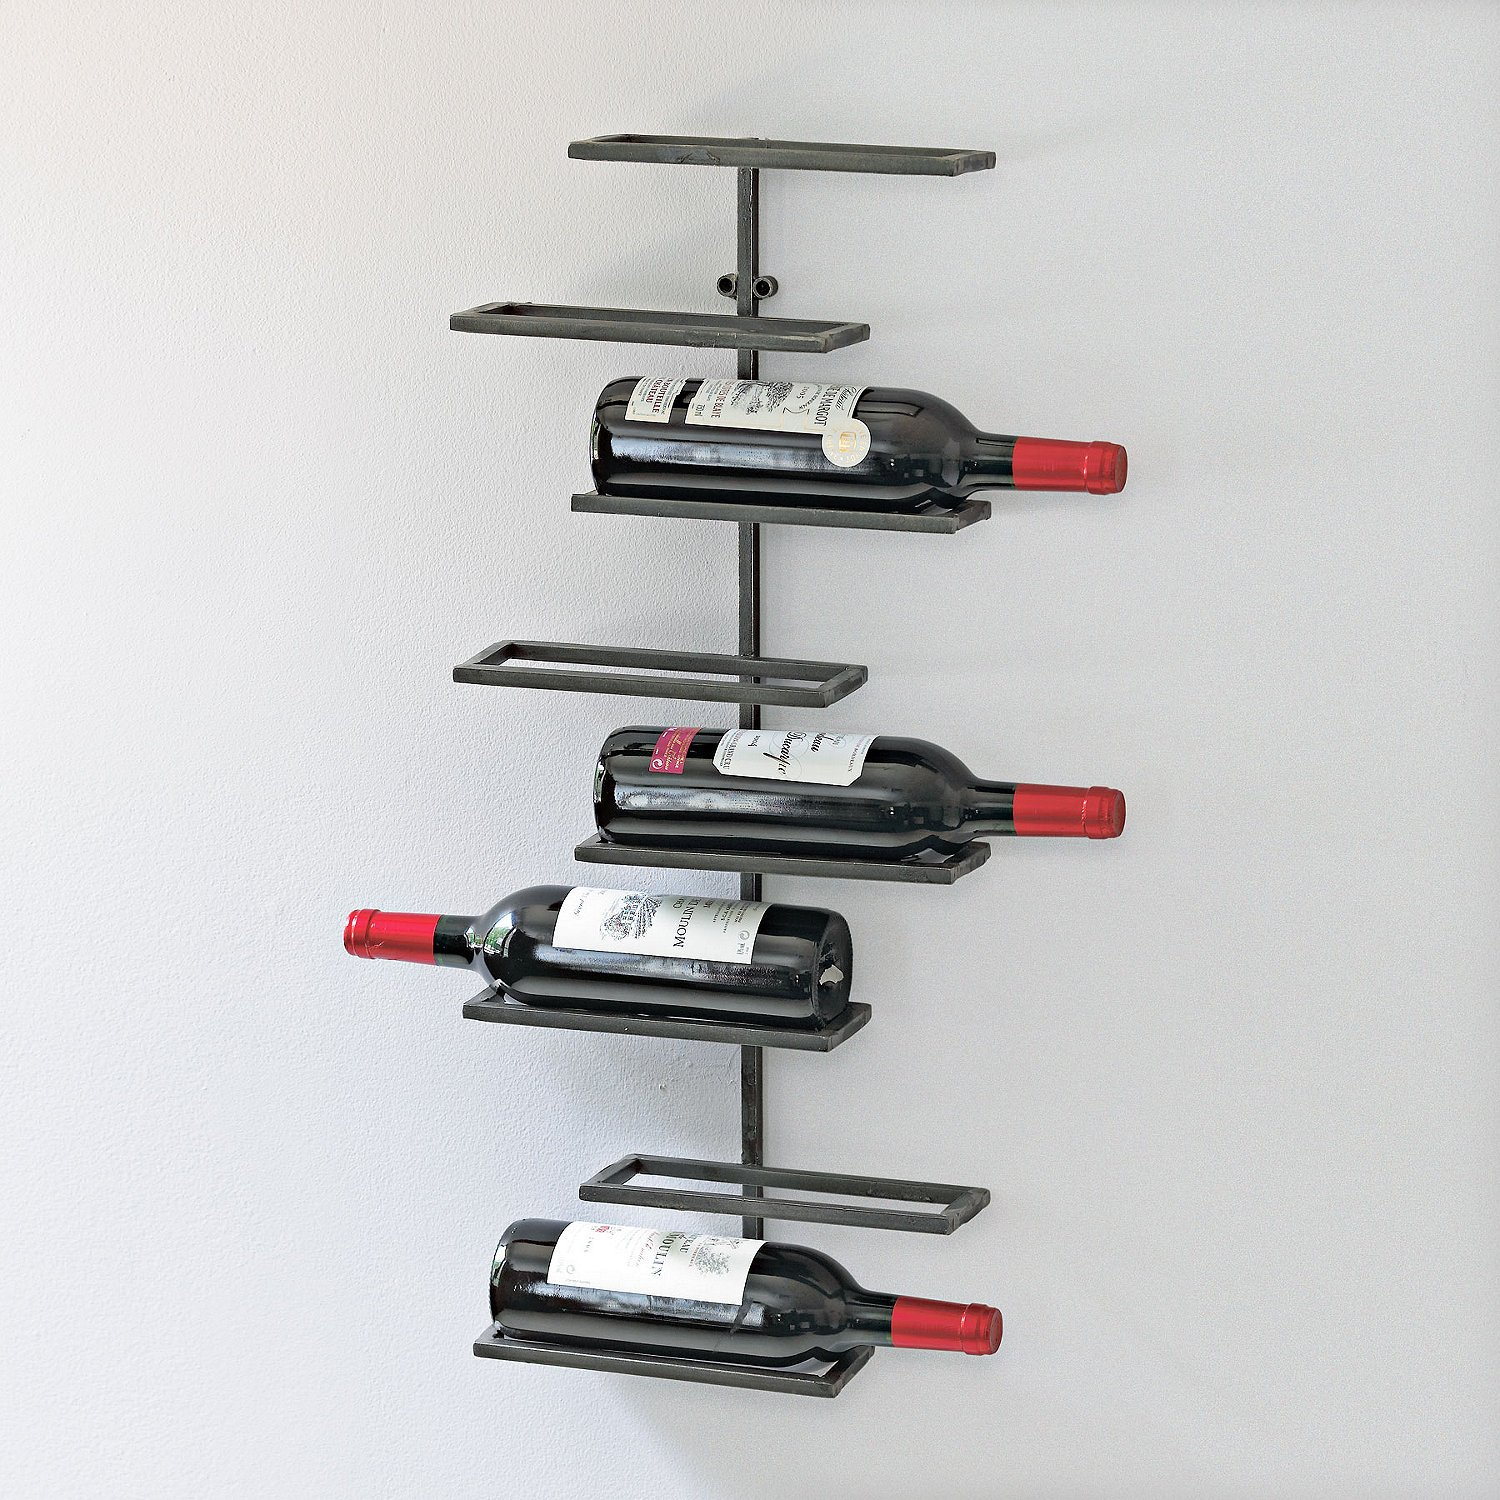 Wine Enthusiast 8 Bottle Urban Wall Wine Rack by Wine Enthusiast (Image #1)